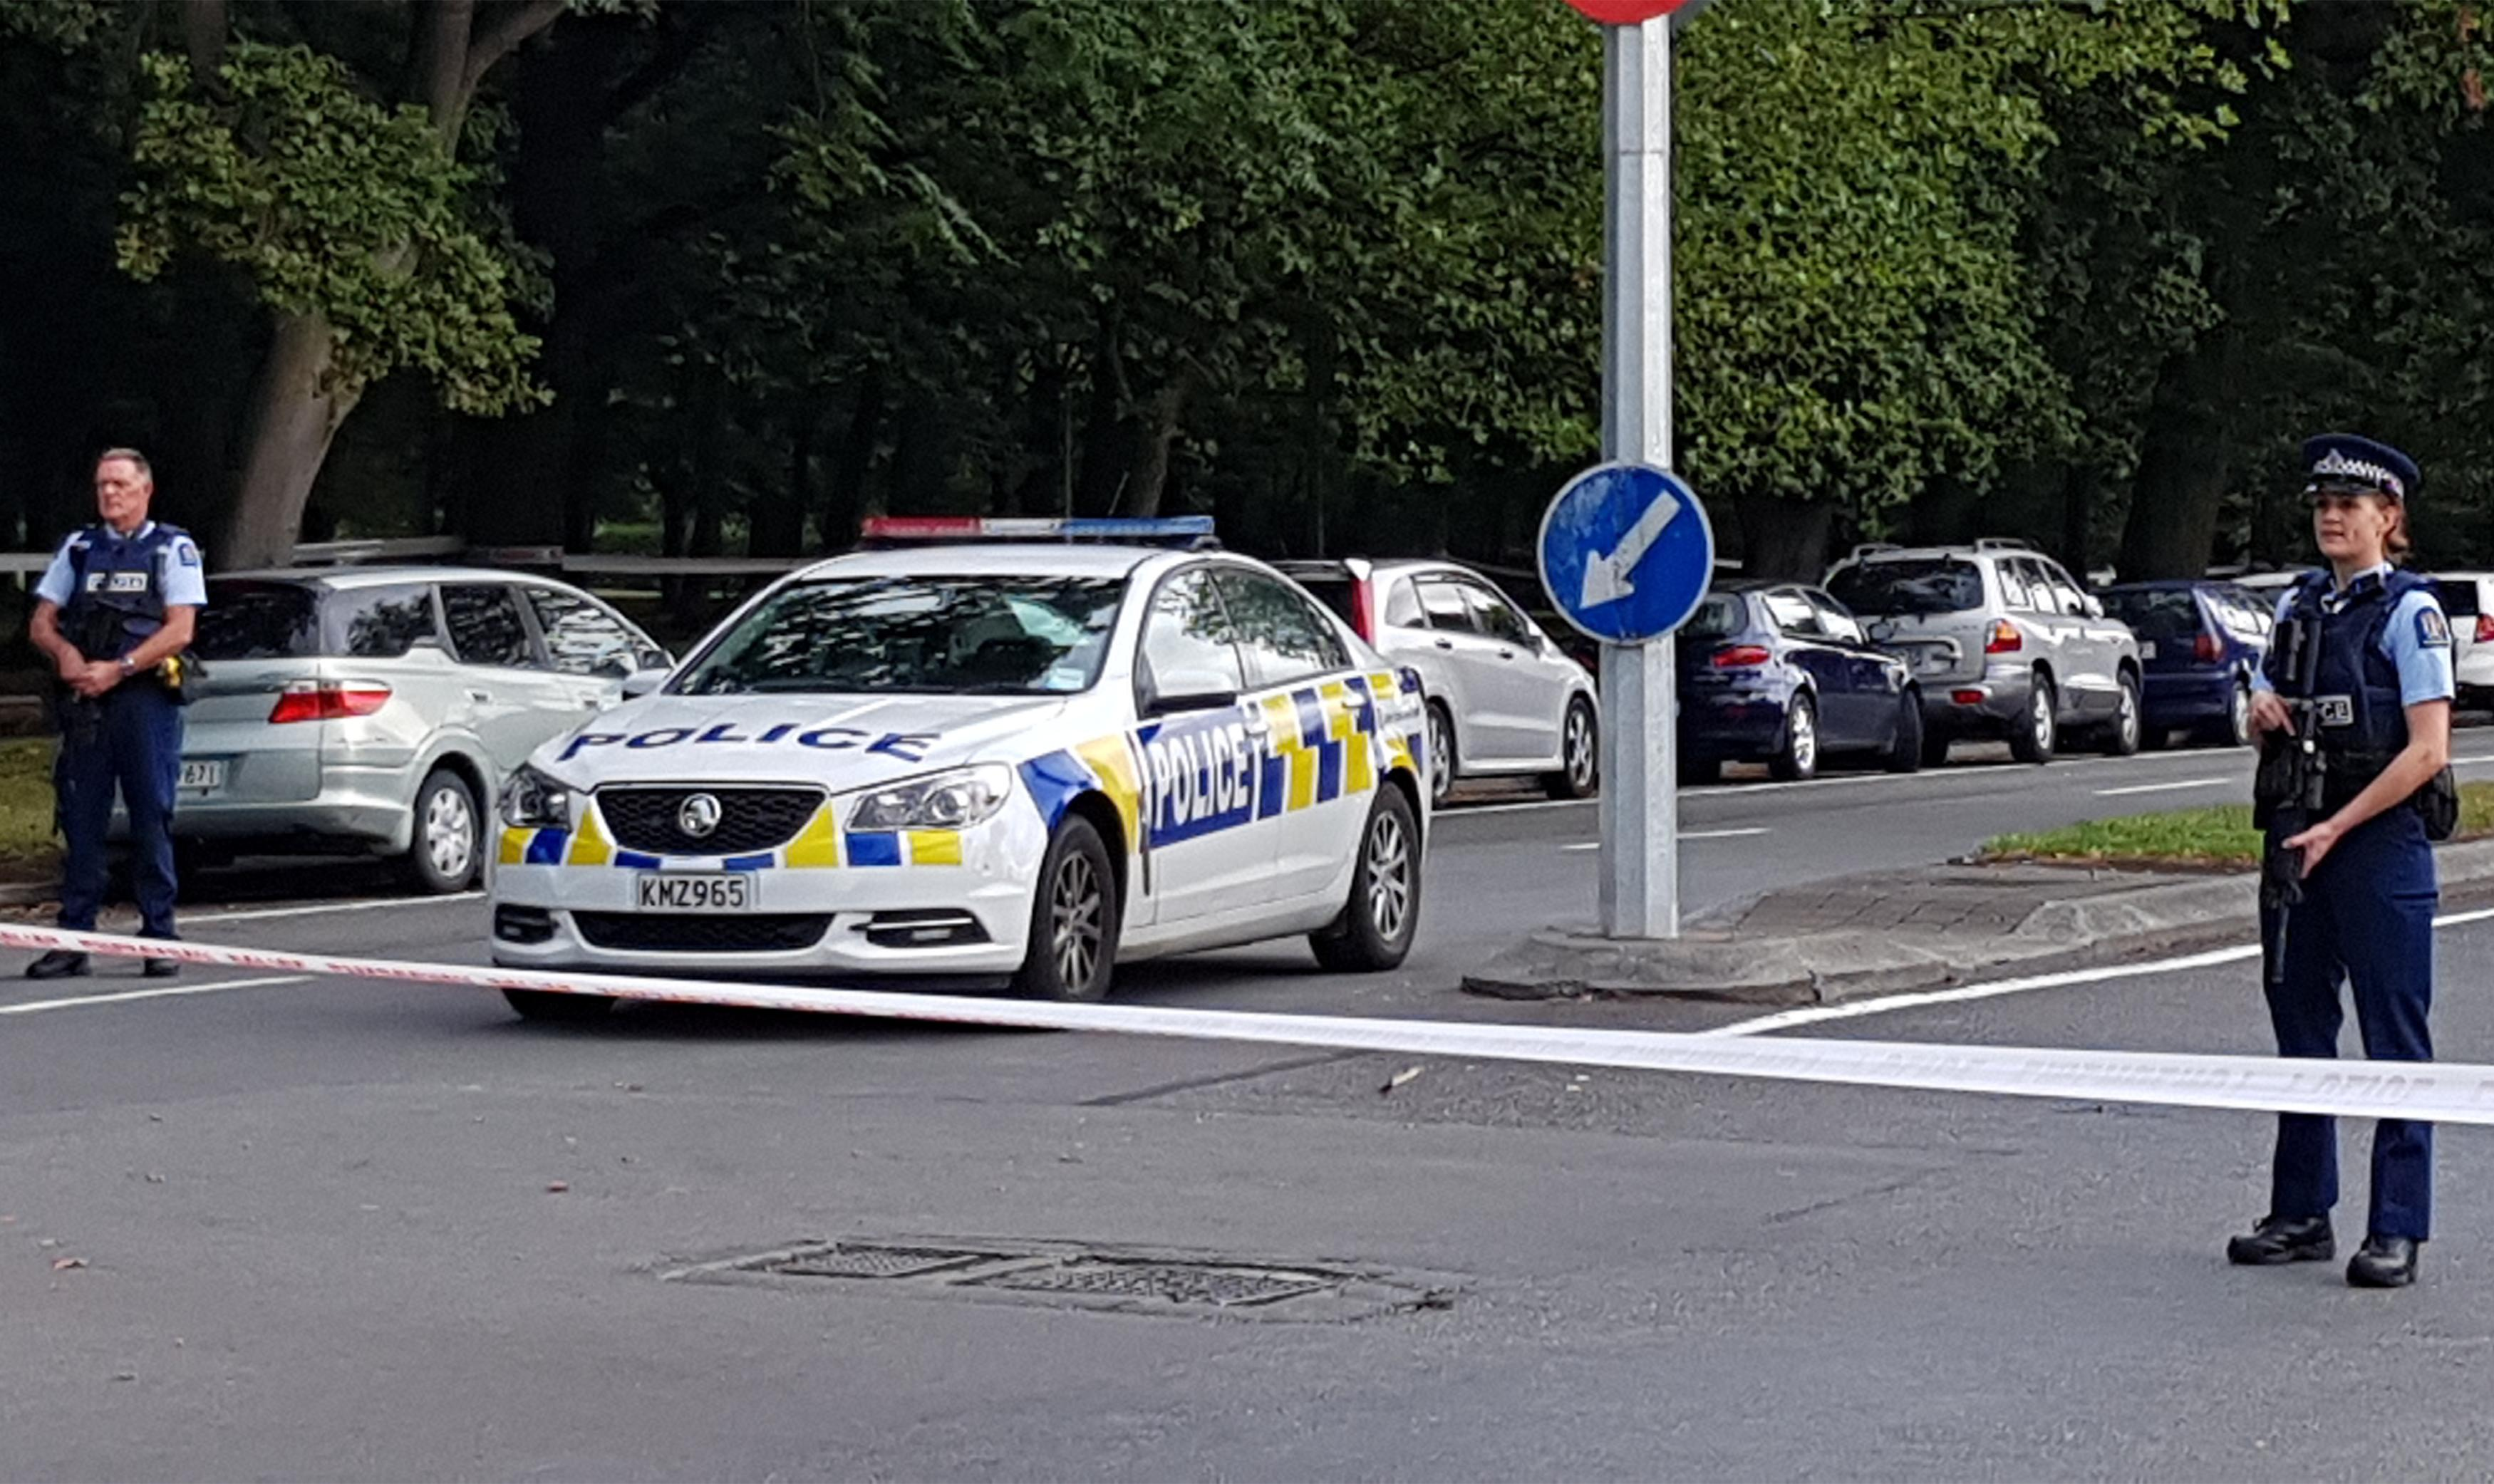 Shooting In Christchurch Video Twitter: Don't Share Christchurch Mosque Shooting Video, Twitter